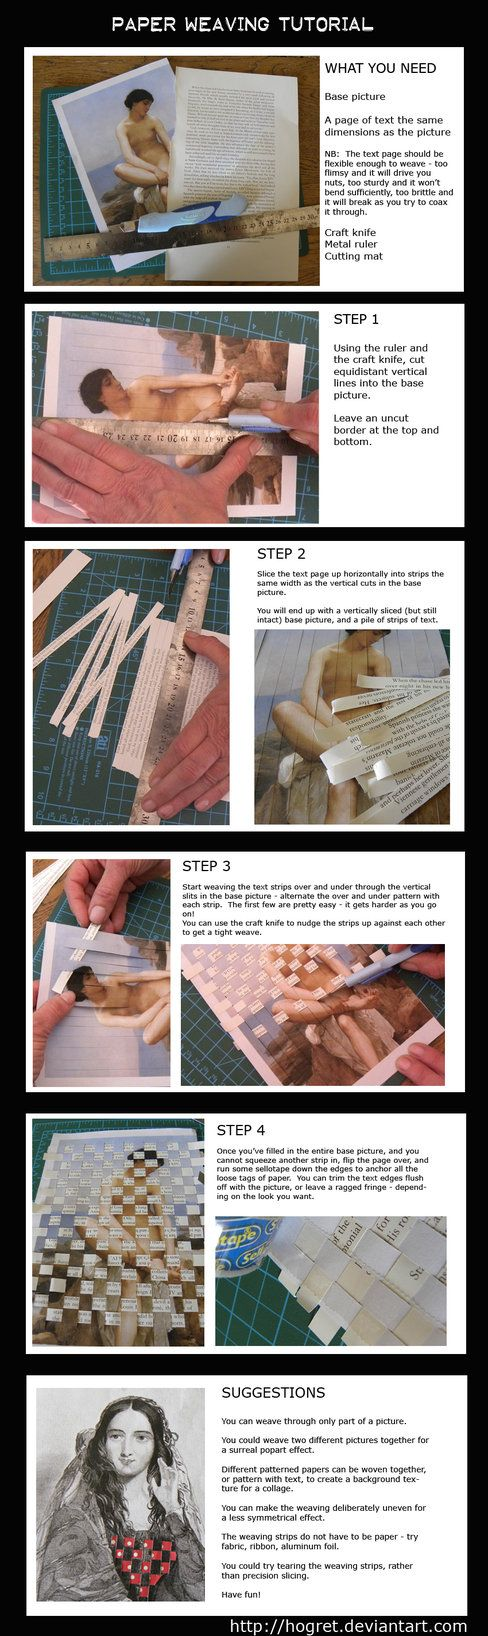 Paper Weaving Tutorial.. hmm interesting twist on paper weaving... maybe color scheme and magazine picture?